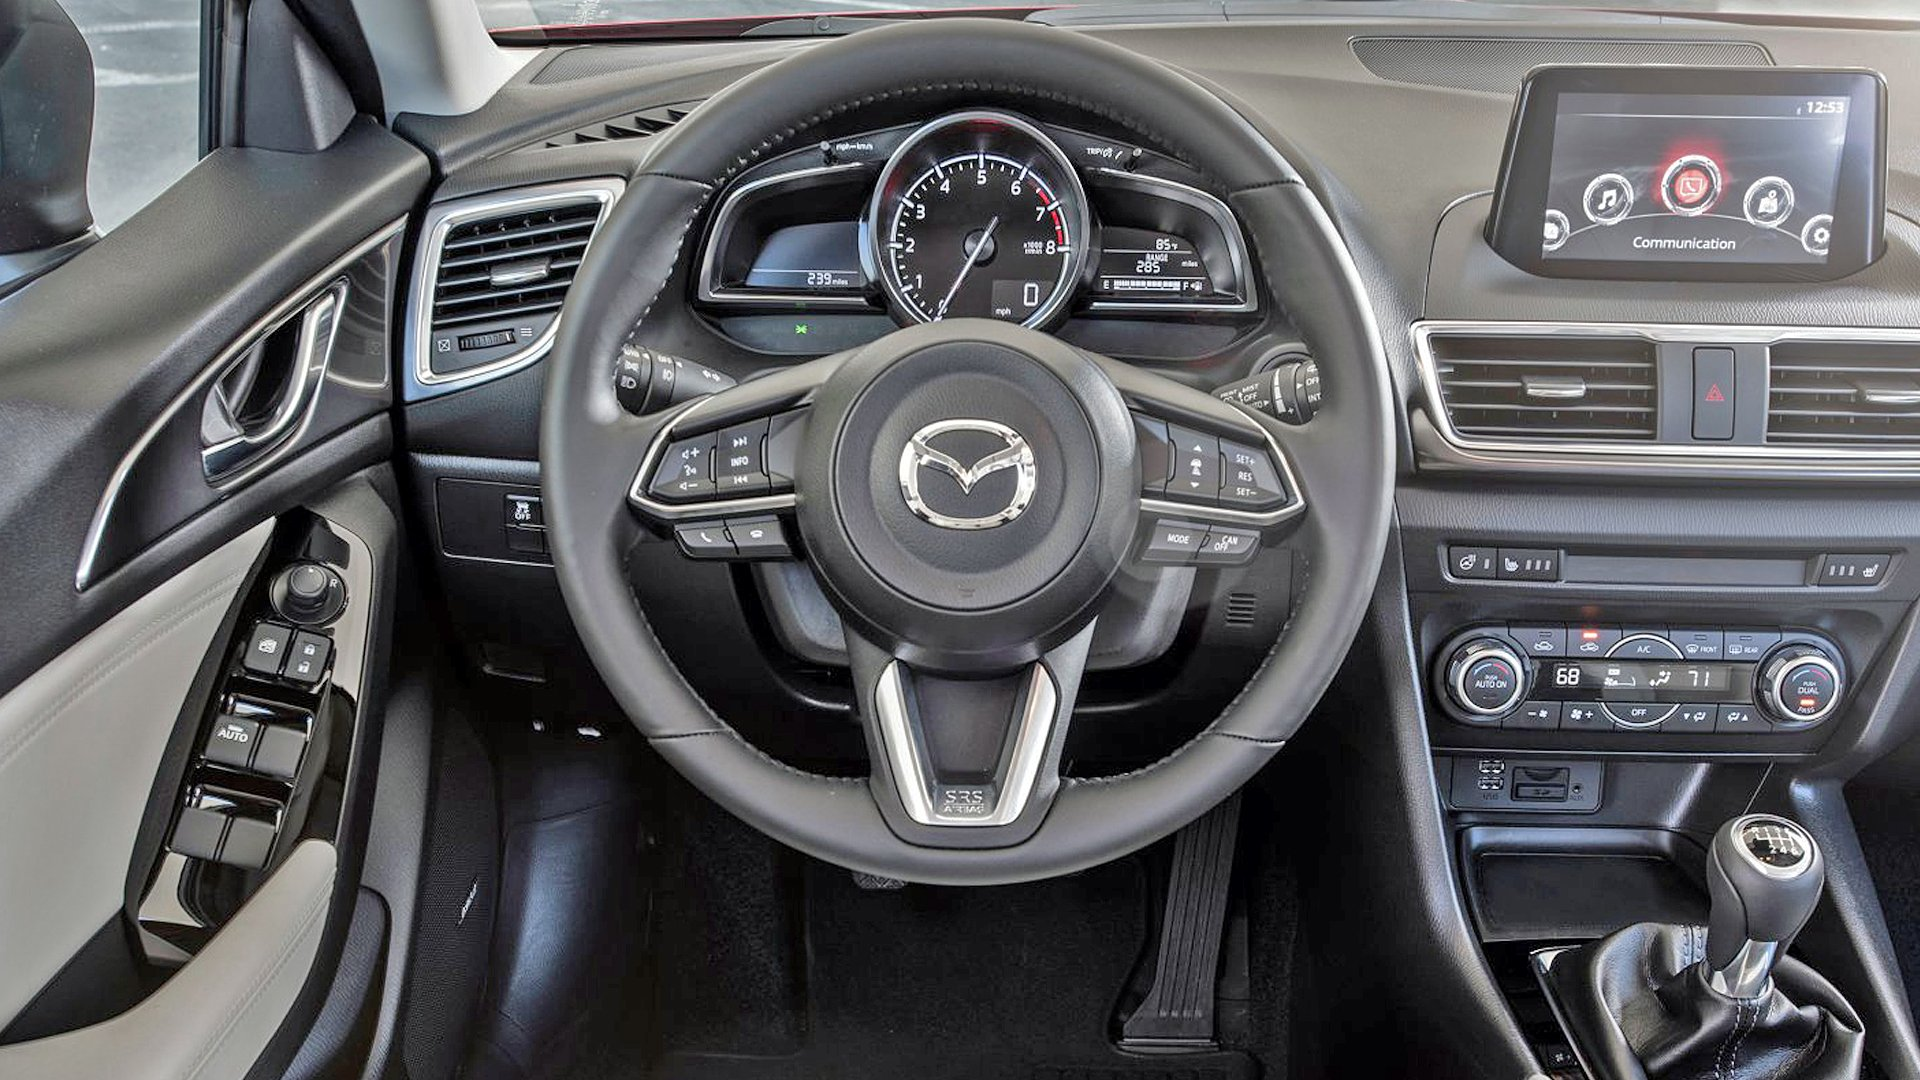 New 2019 Mazda 2 Interior Design